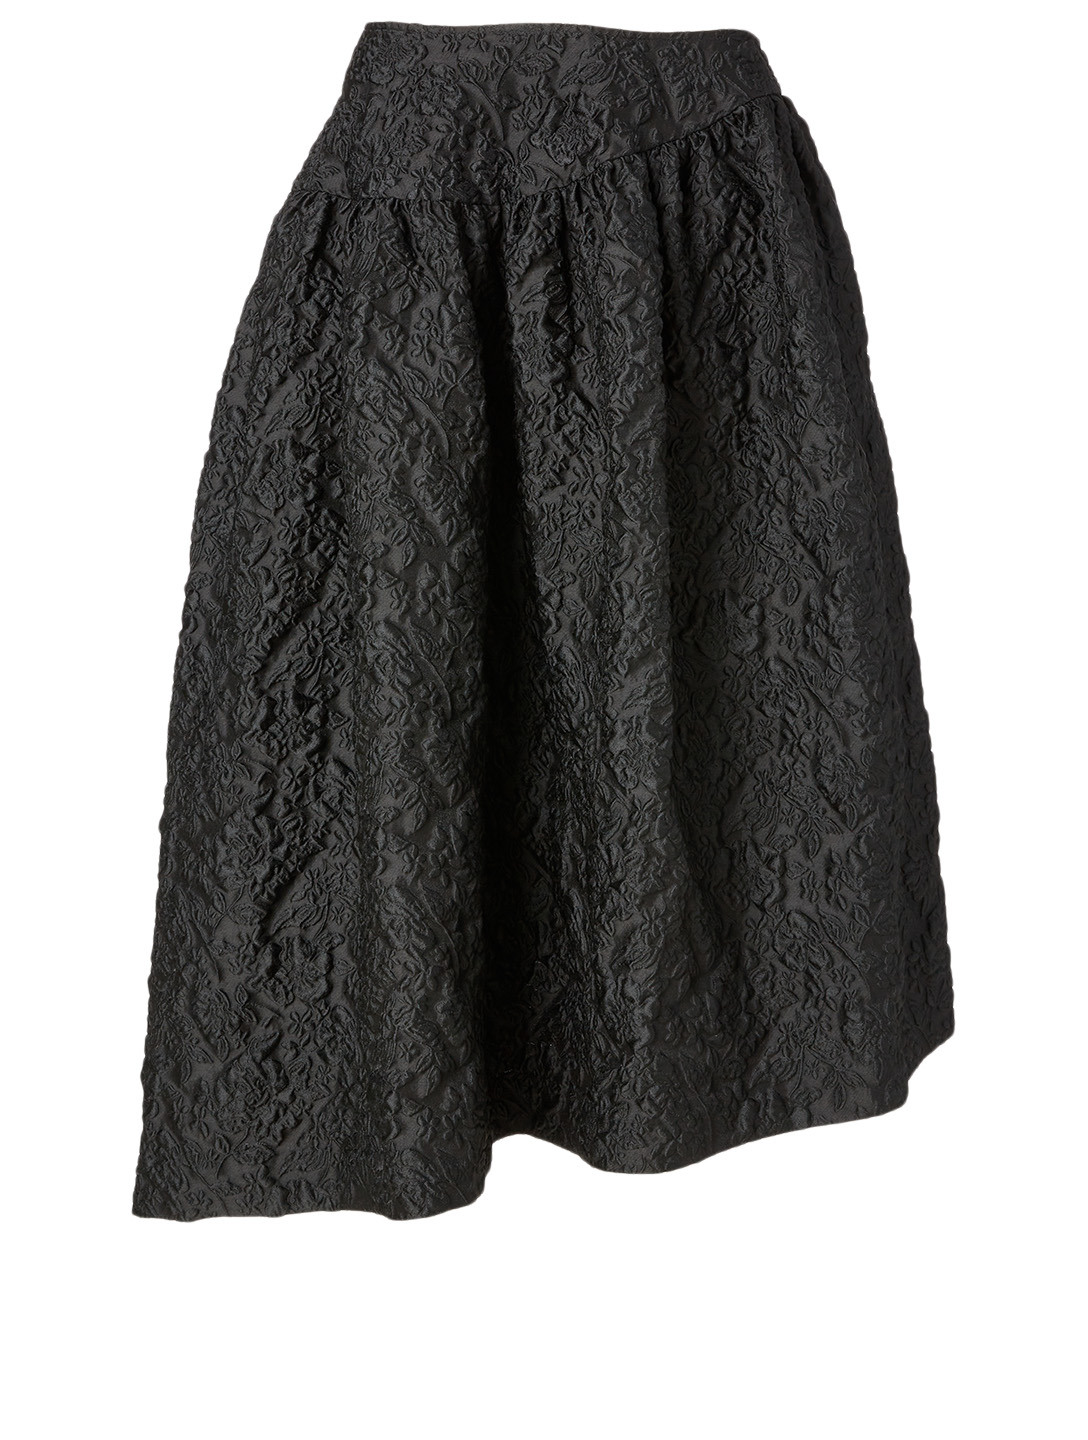 SIMONE ROCHA Asymmetric Midi Skirt Women's Black